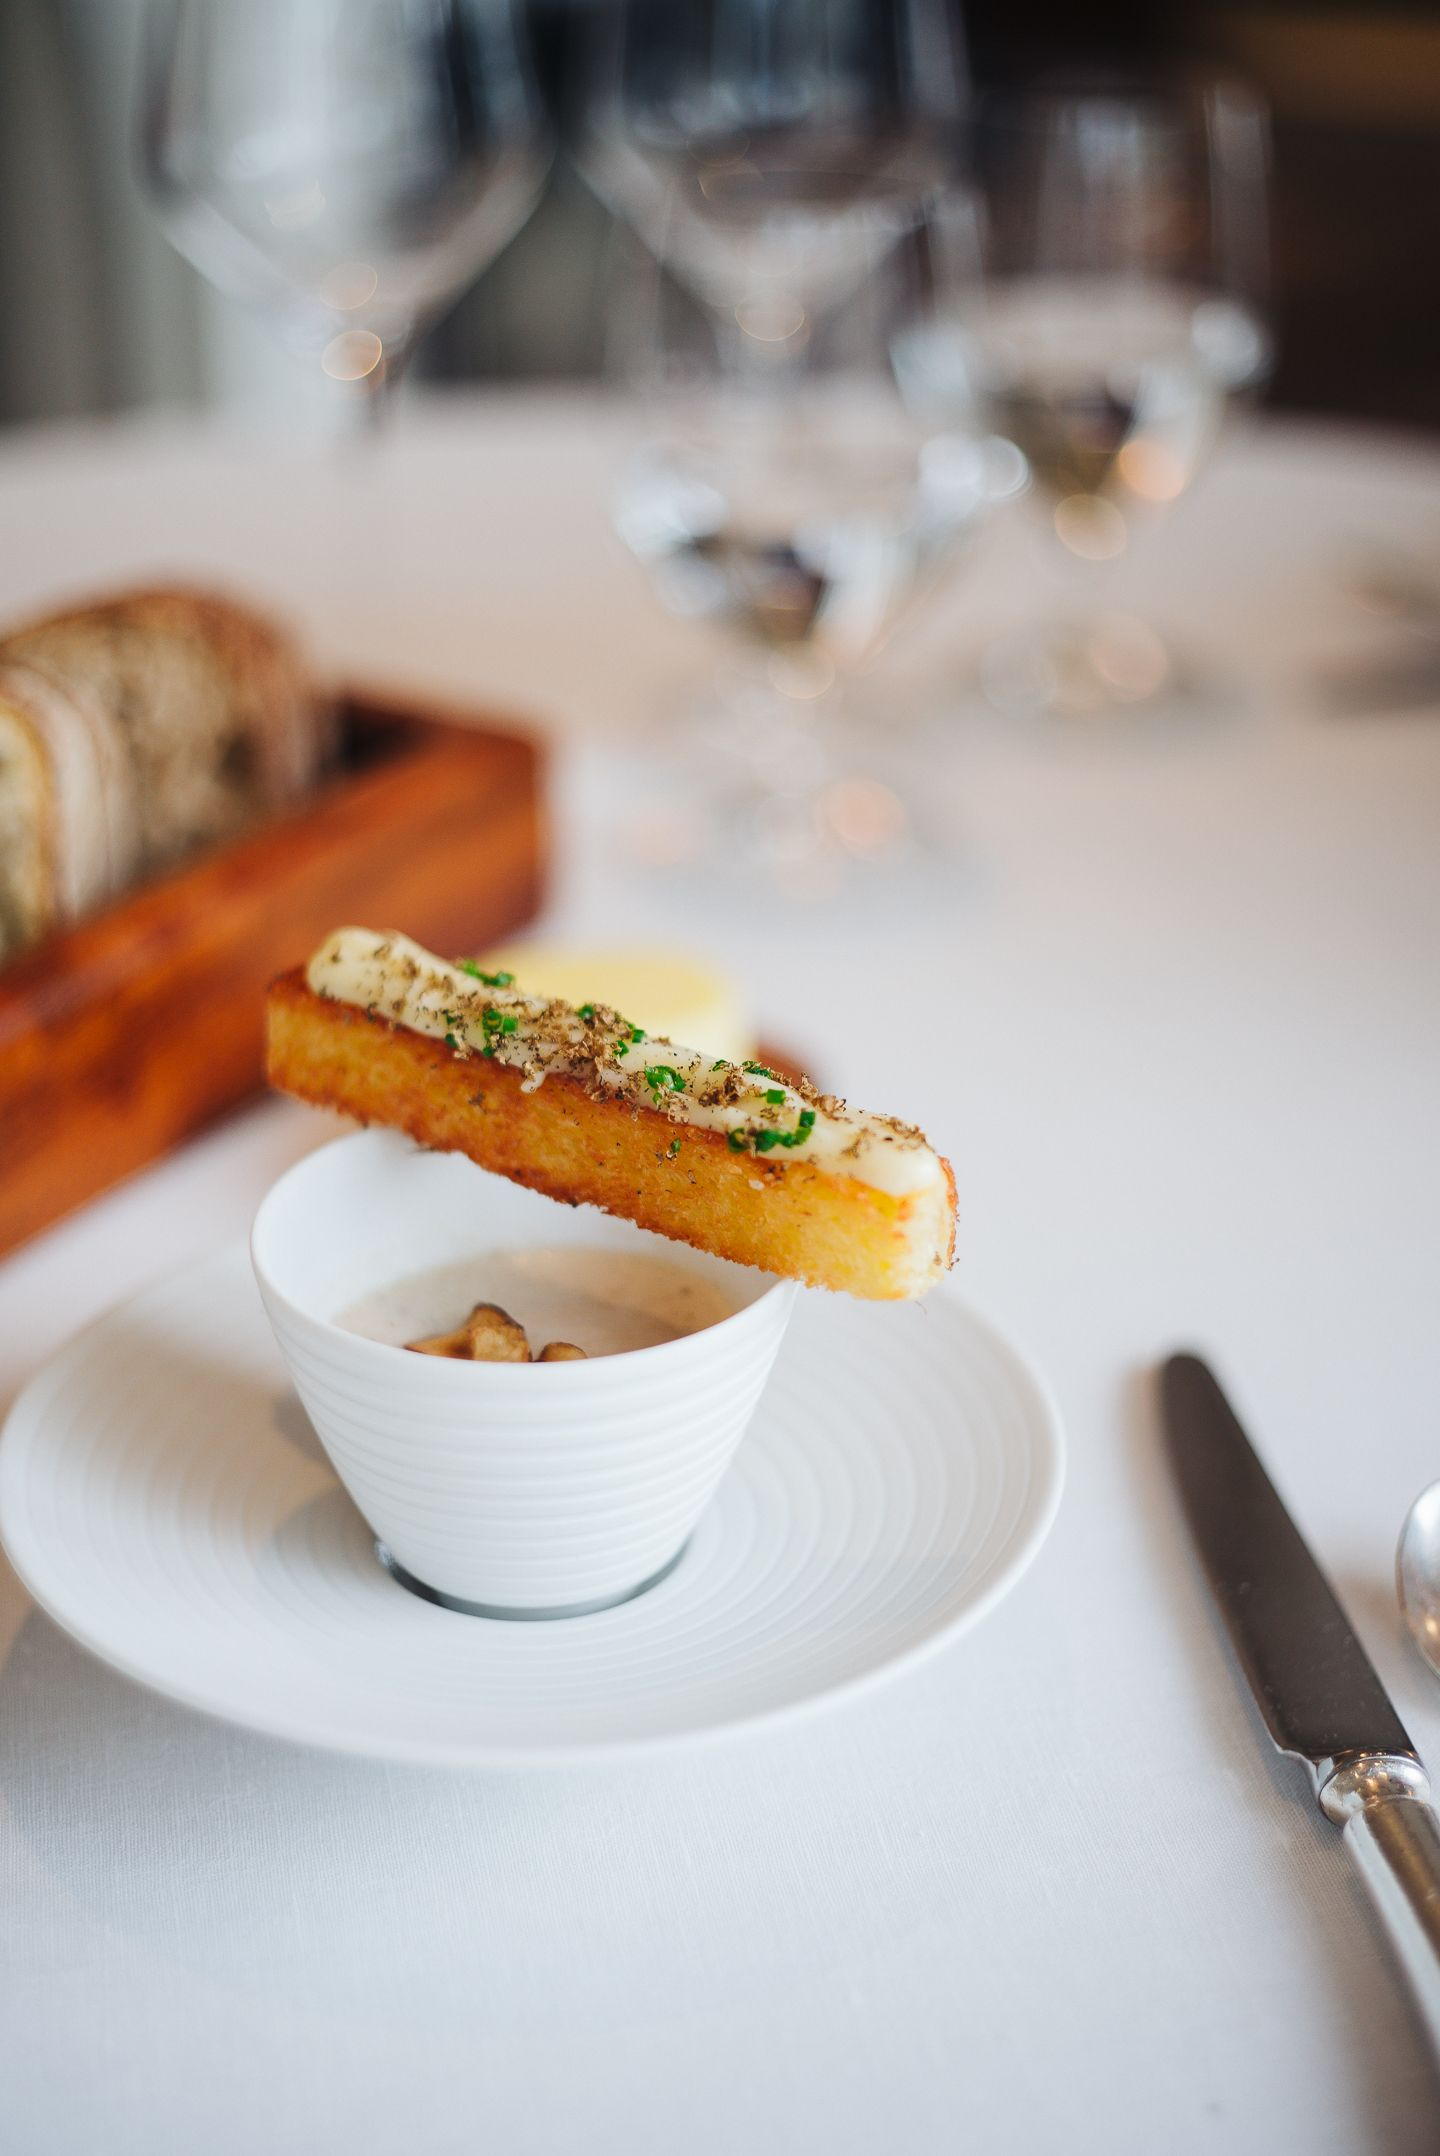 Jerusalem Artichoke Veloute With A Grilled Soldier Covered In A